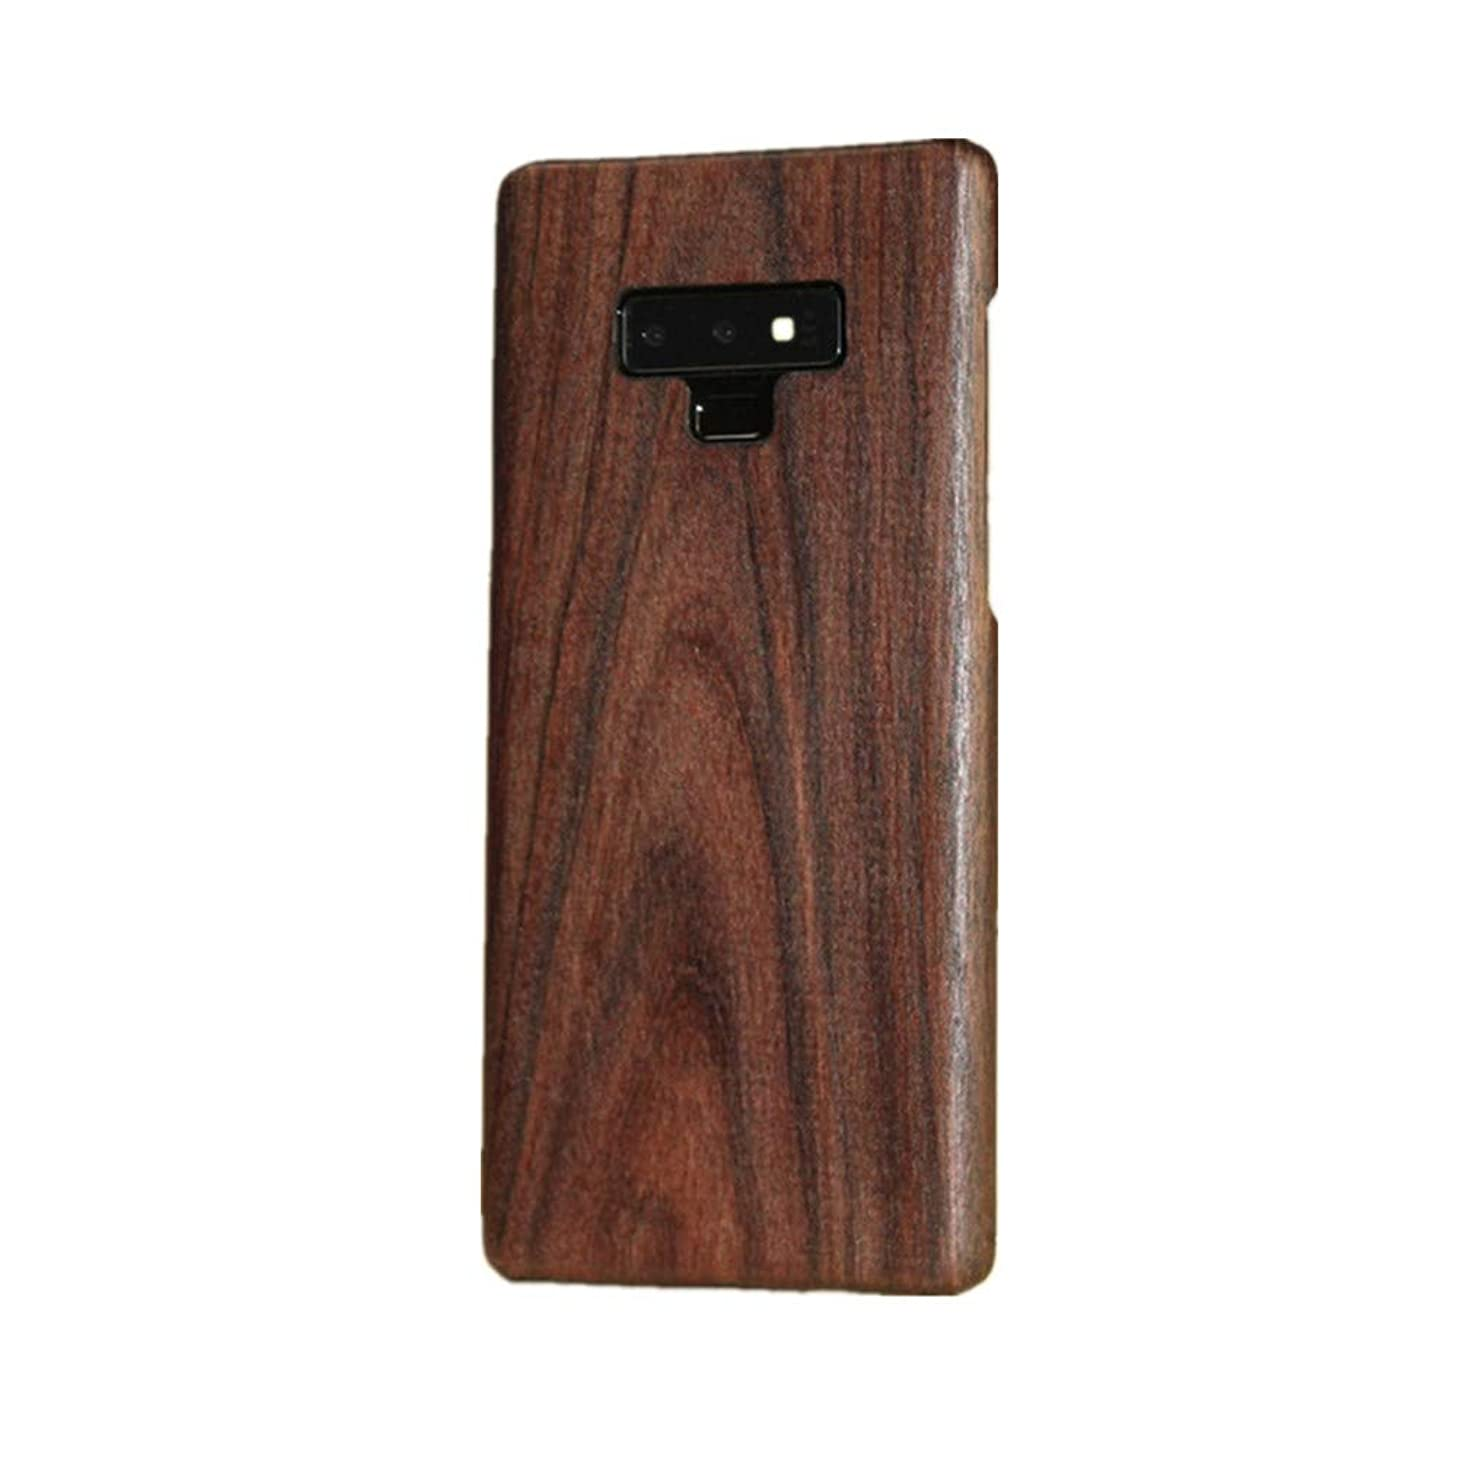 for Samsung Galaxy Note 9 Wood Case,DAYJOY Luxury Ultra Thin Ultra Light Genuine Real Wood Wooden Shockproof Hybird case Cover for Samsung Galaxy Note 9(E)